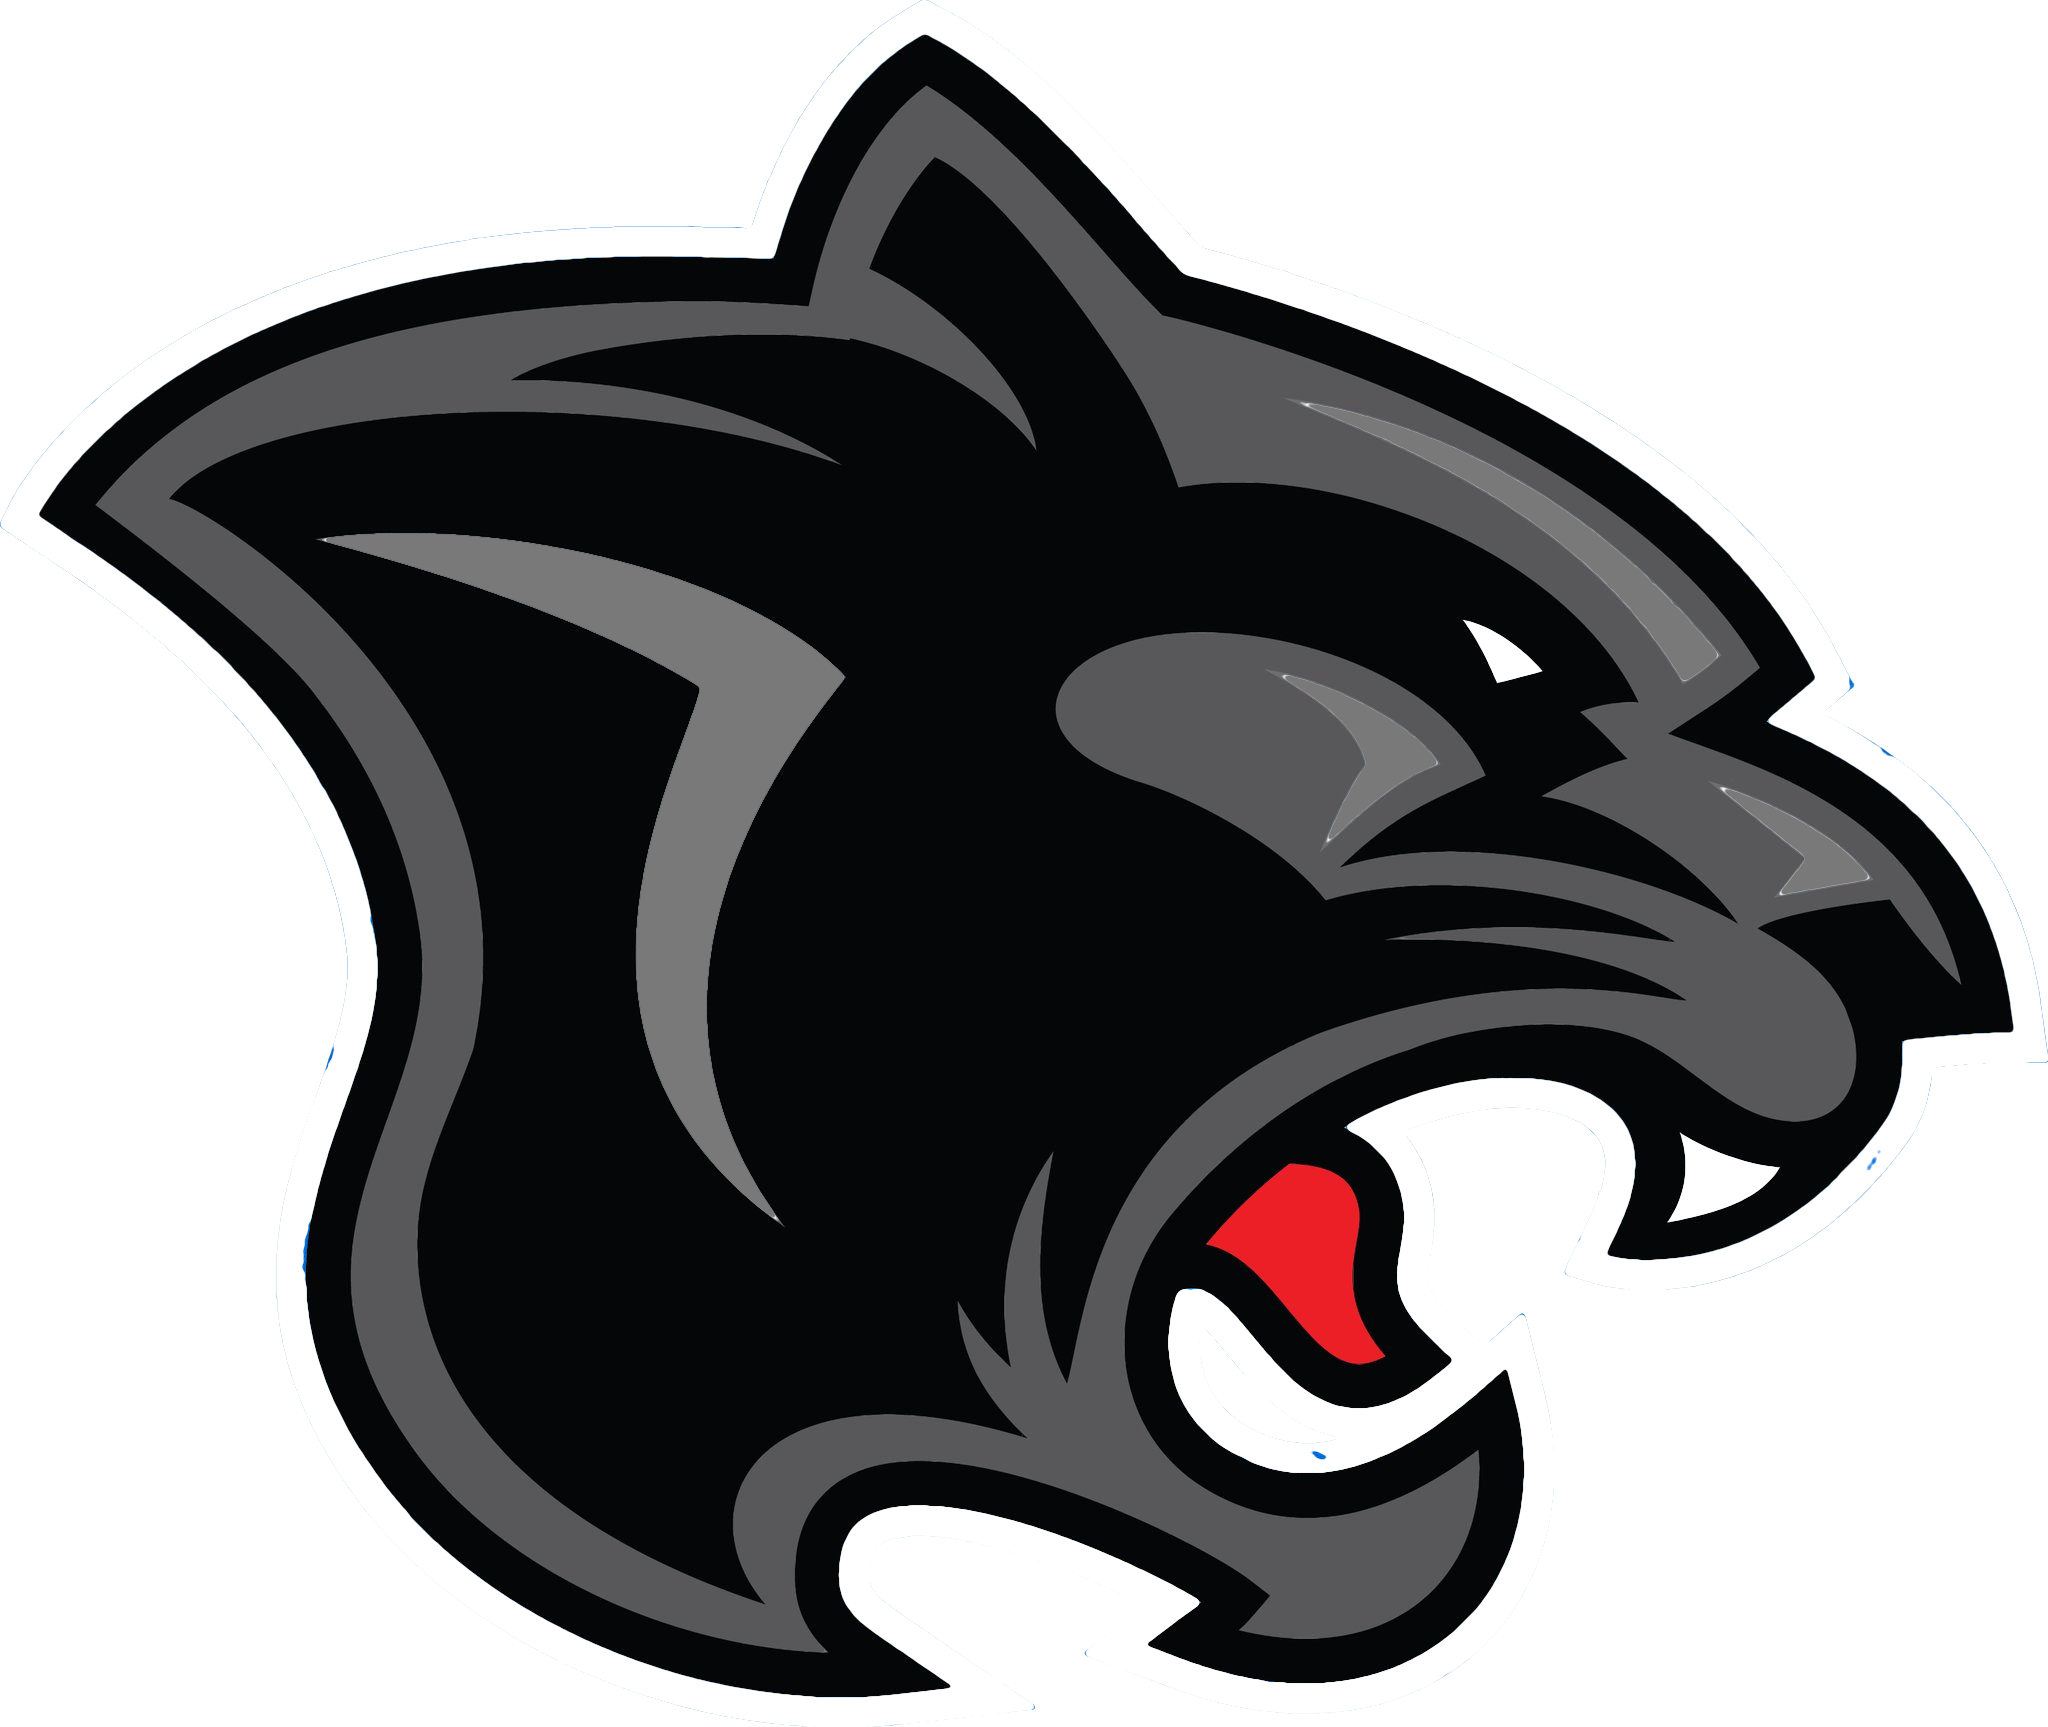 panther png transparent panther png images pluspng rh pluspng com black panther head logo Carolina Panthers New Logo